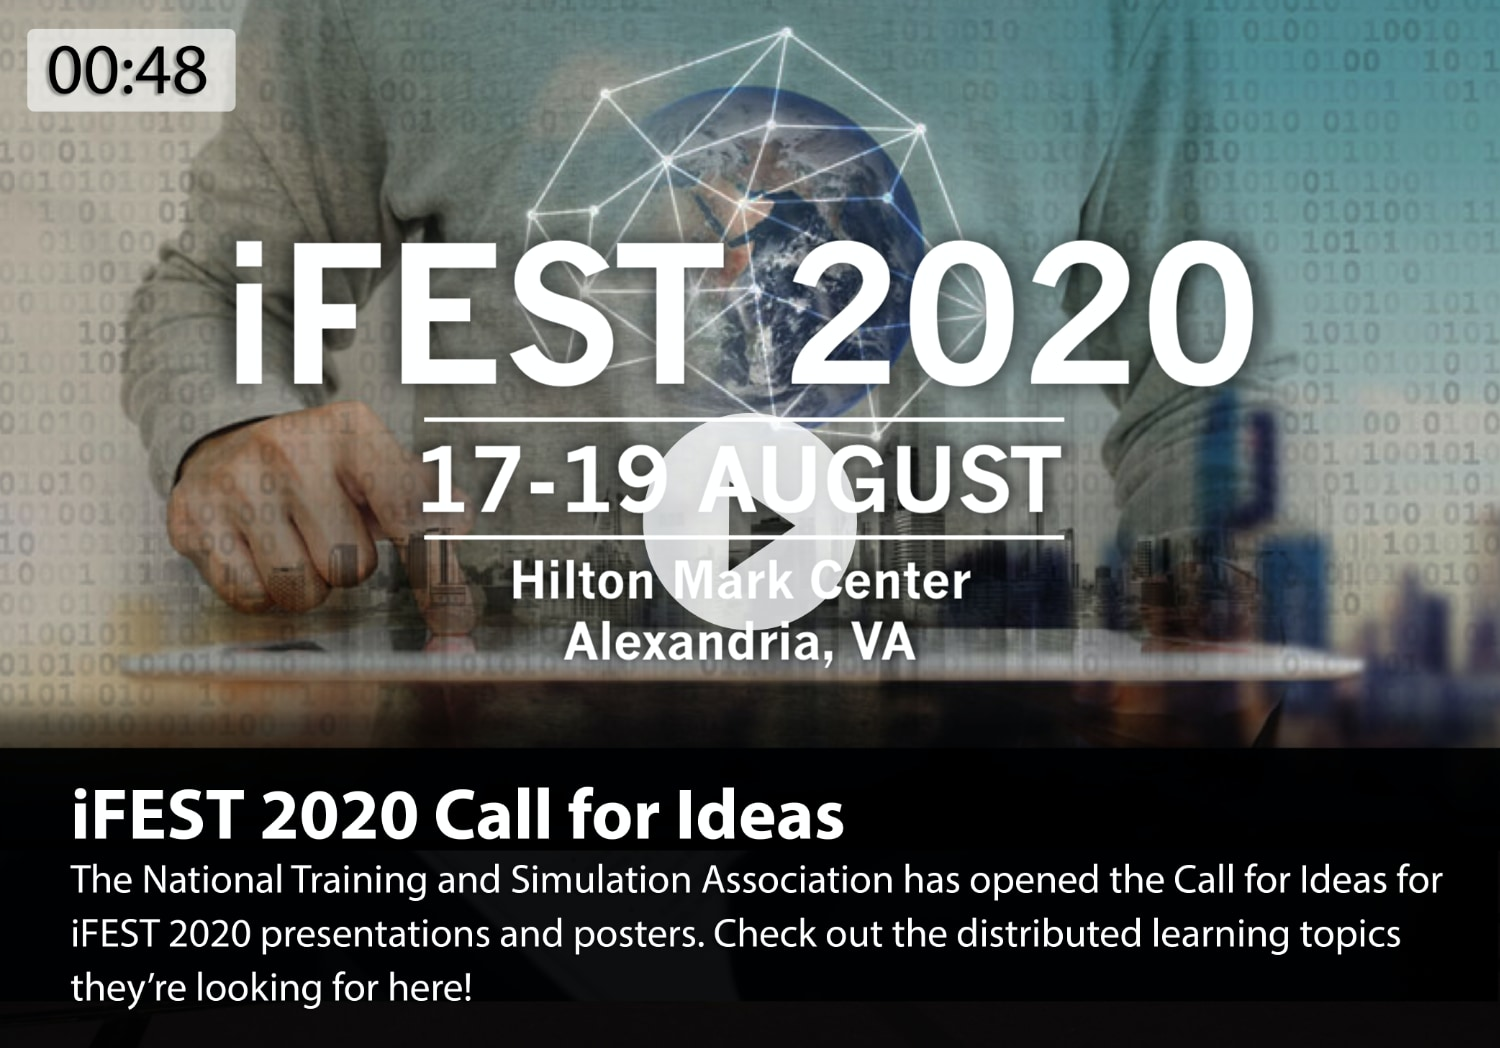 iFest 2020 Call For Ideas